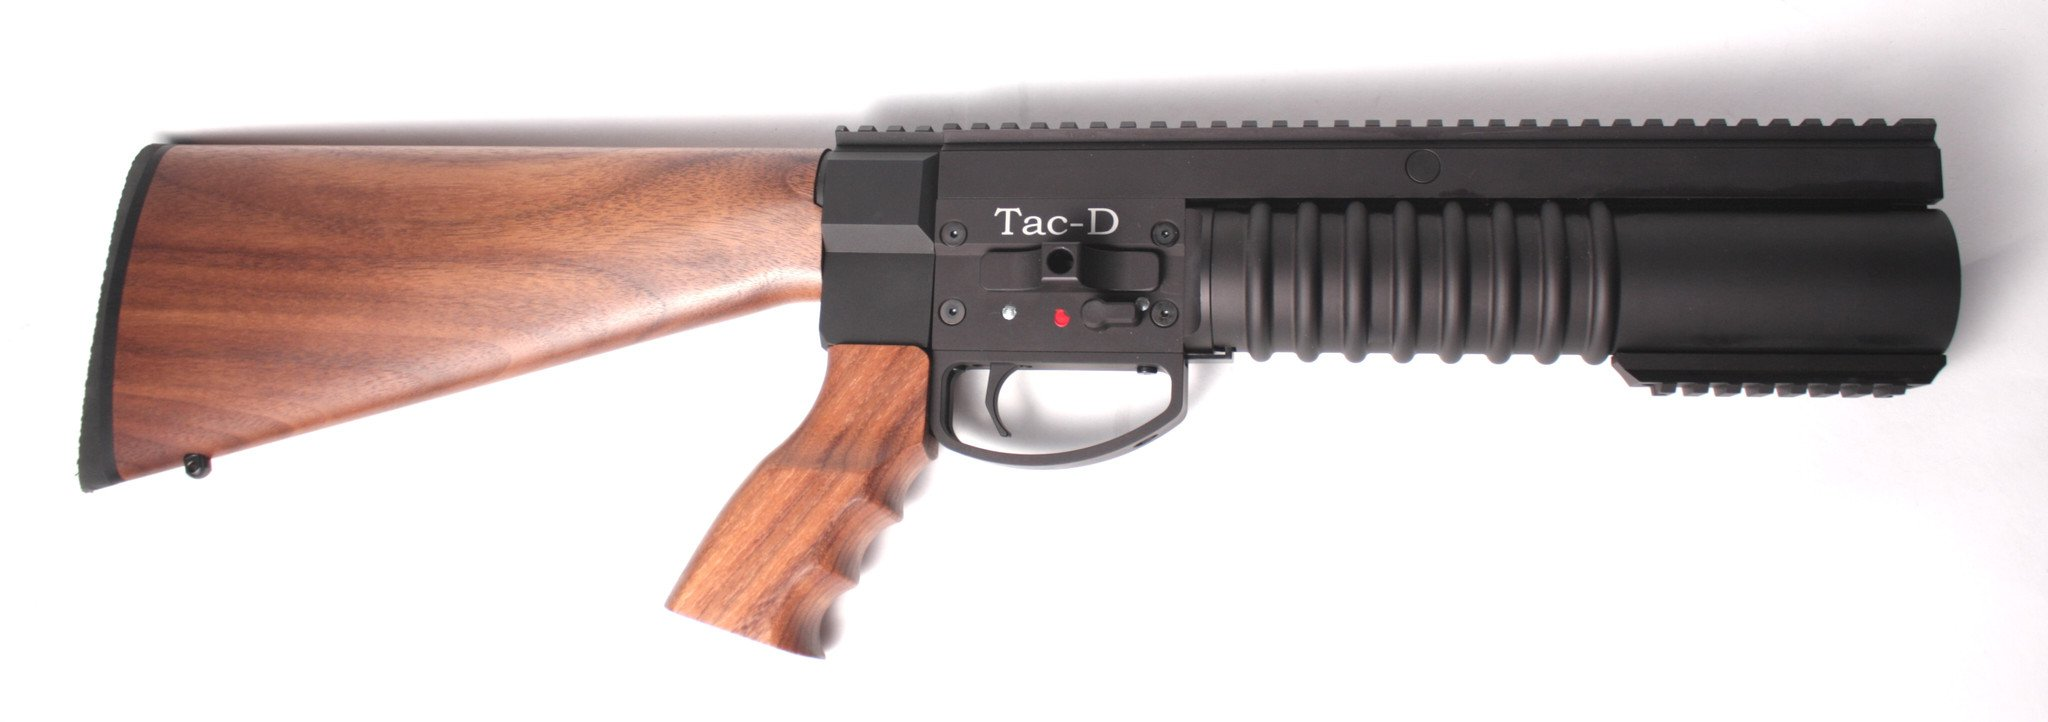 Tac-D Launcher with AR Wood Stock